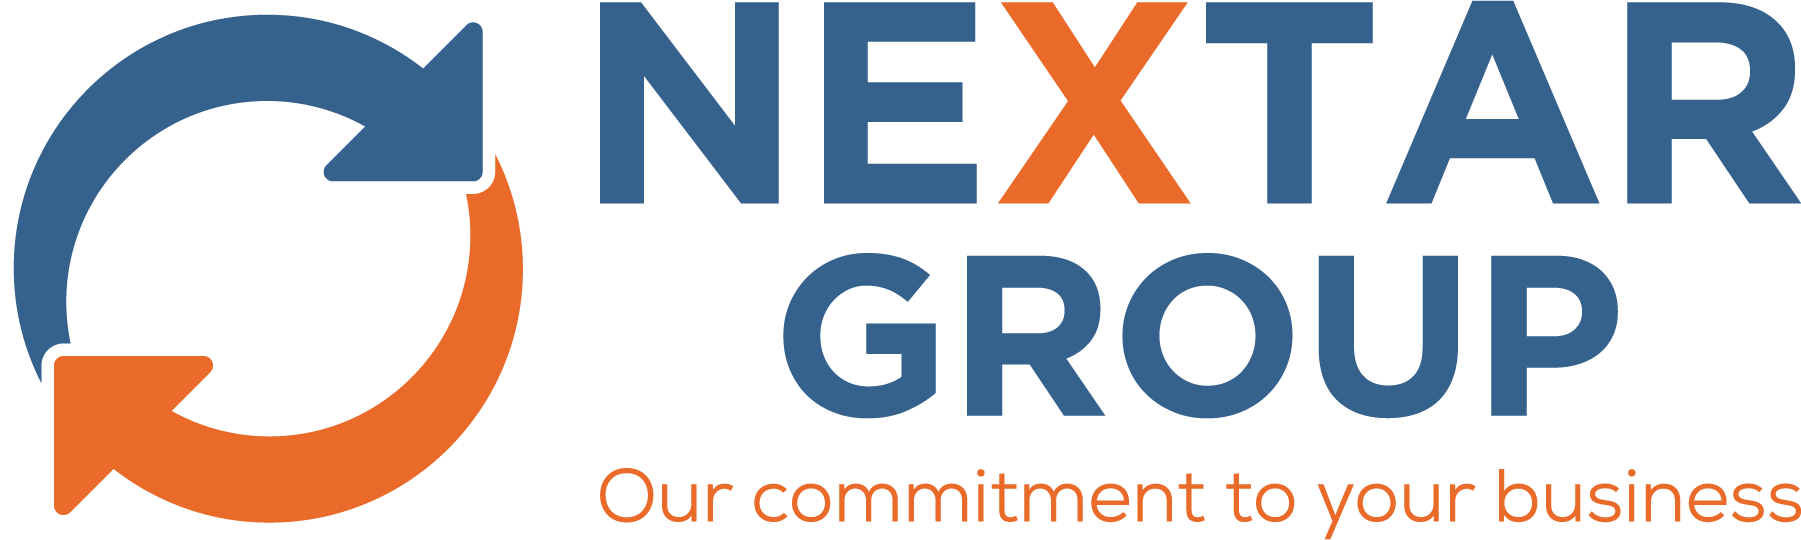 Nextar Group